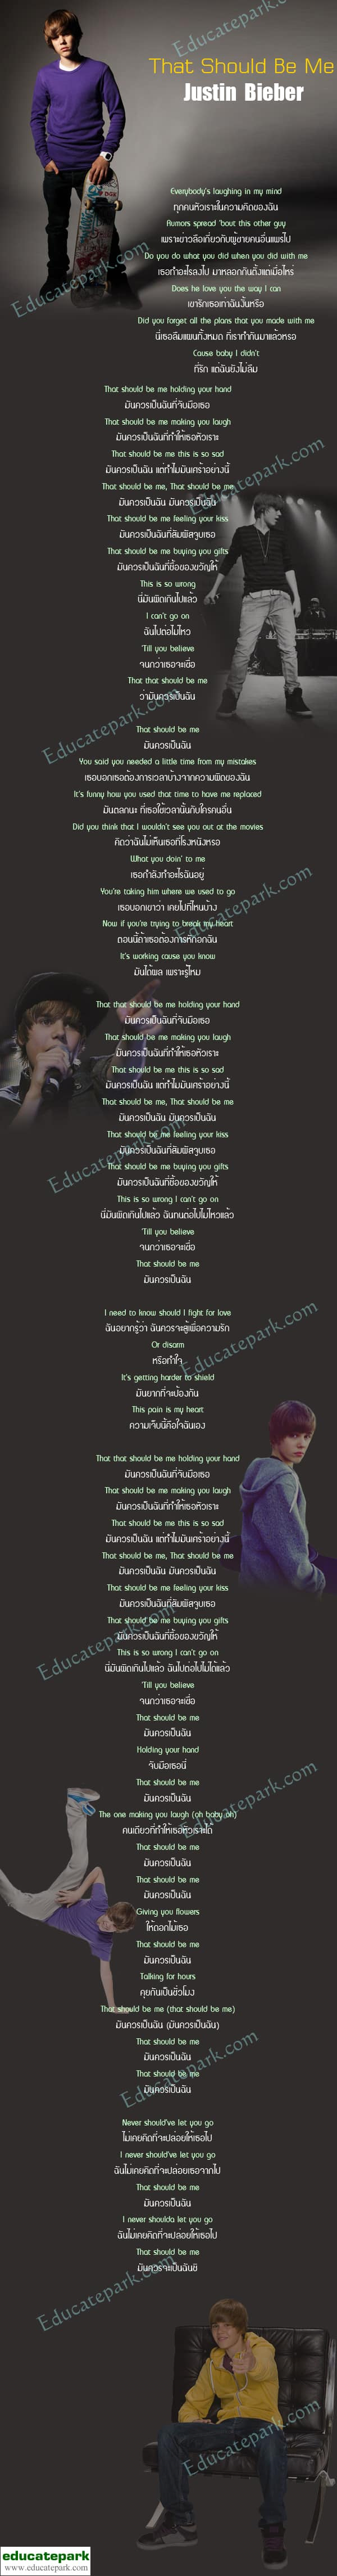 แปลเพลง That Should Be Me - Justin Bieber